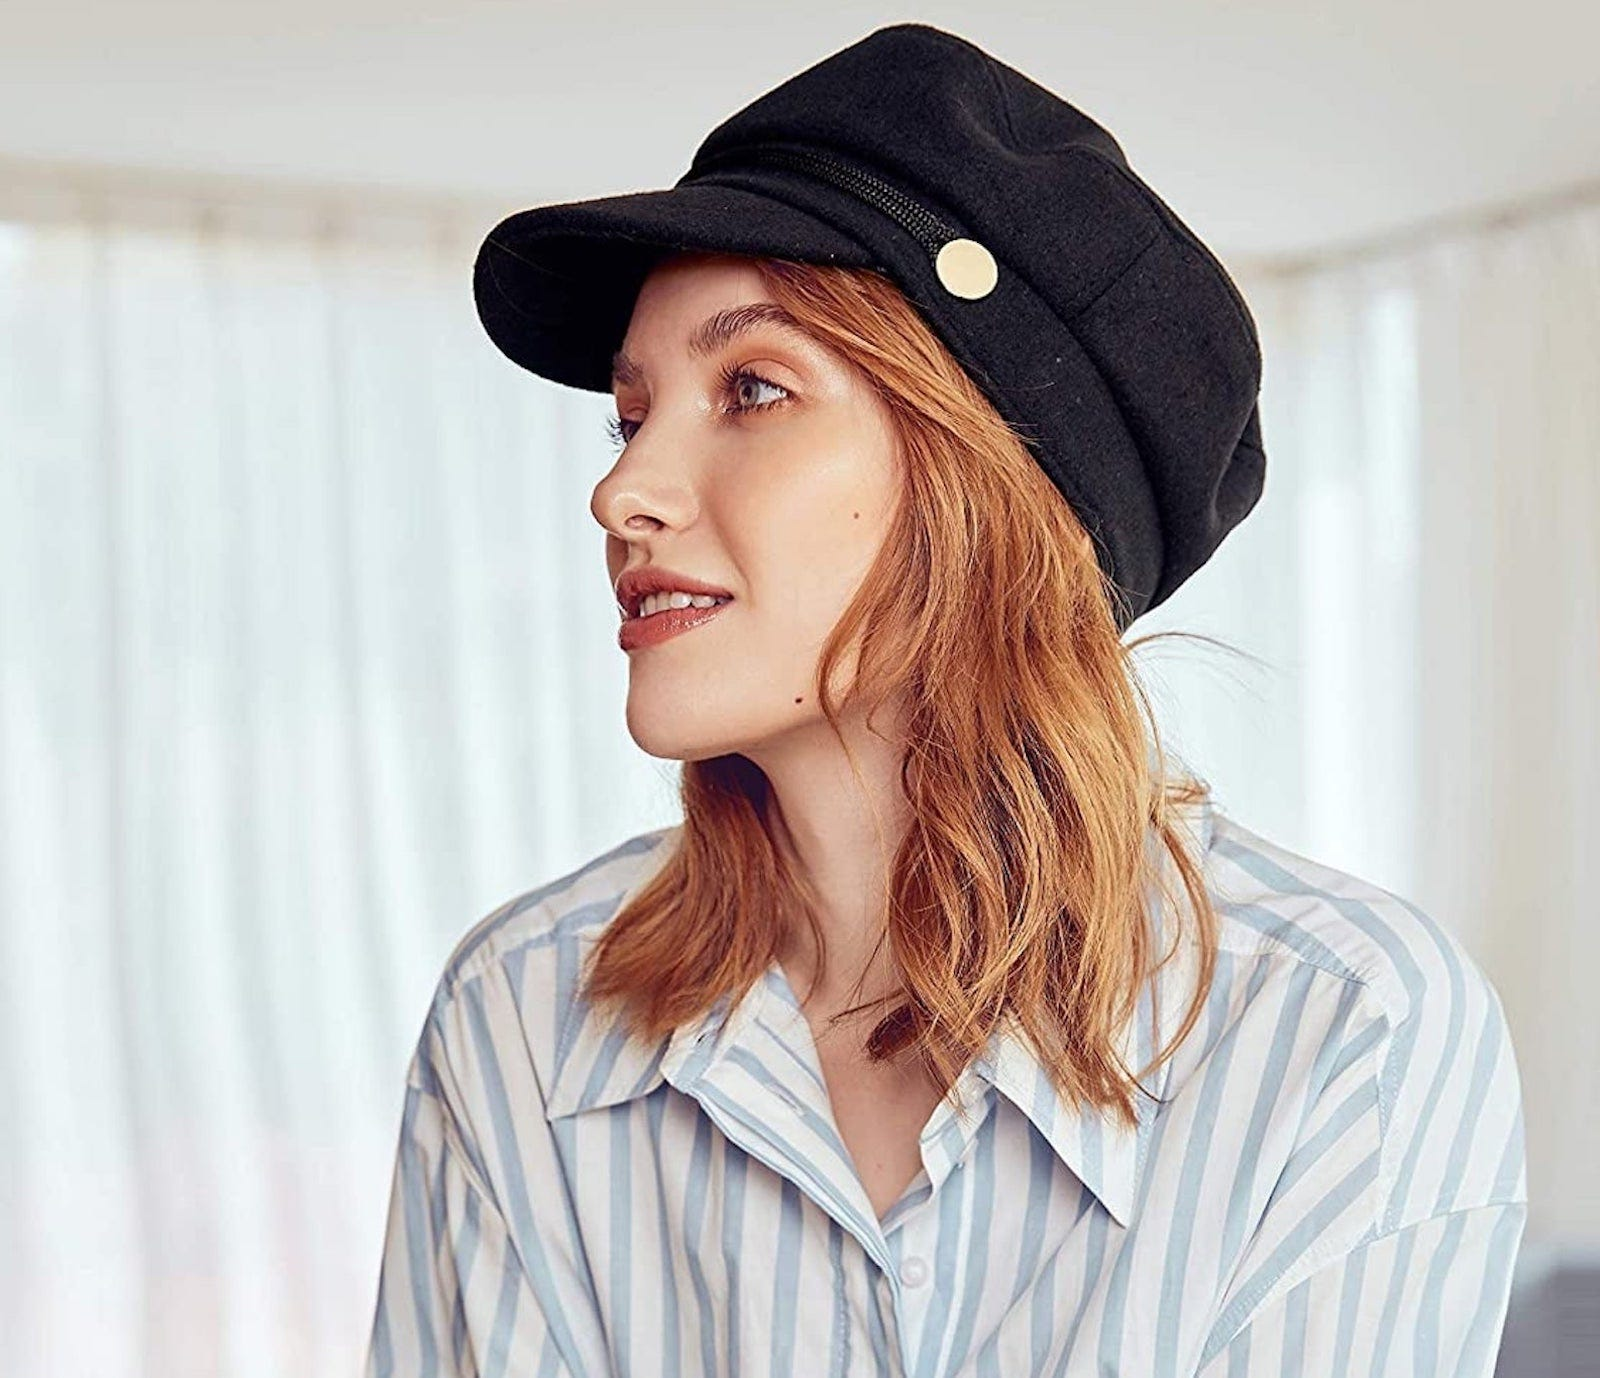 A redhaired white woman is shown in profile, wearing a blue striped shirt and a black newsboy cap